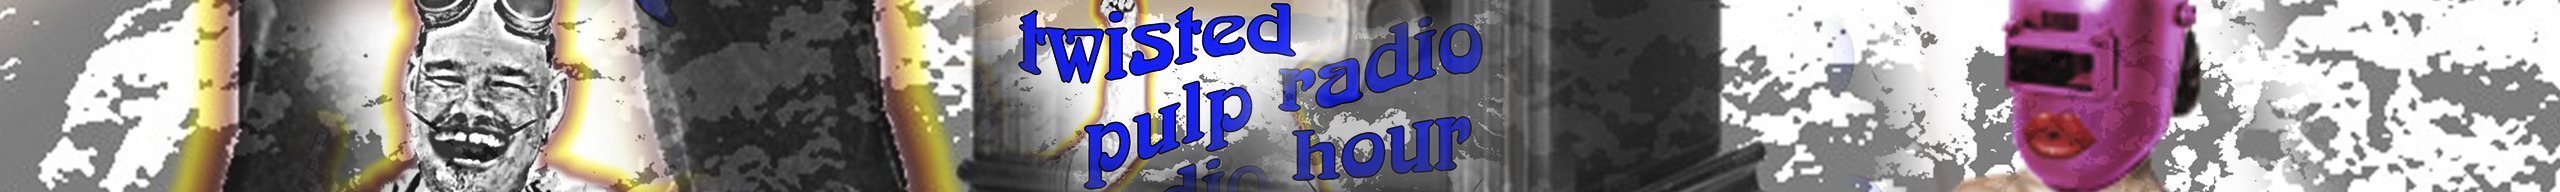 Twisted Pulp Radio Hour Banner